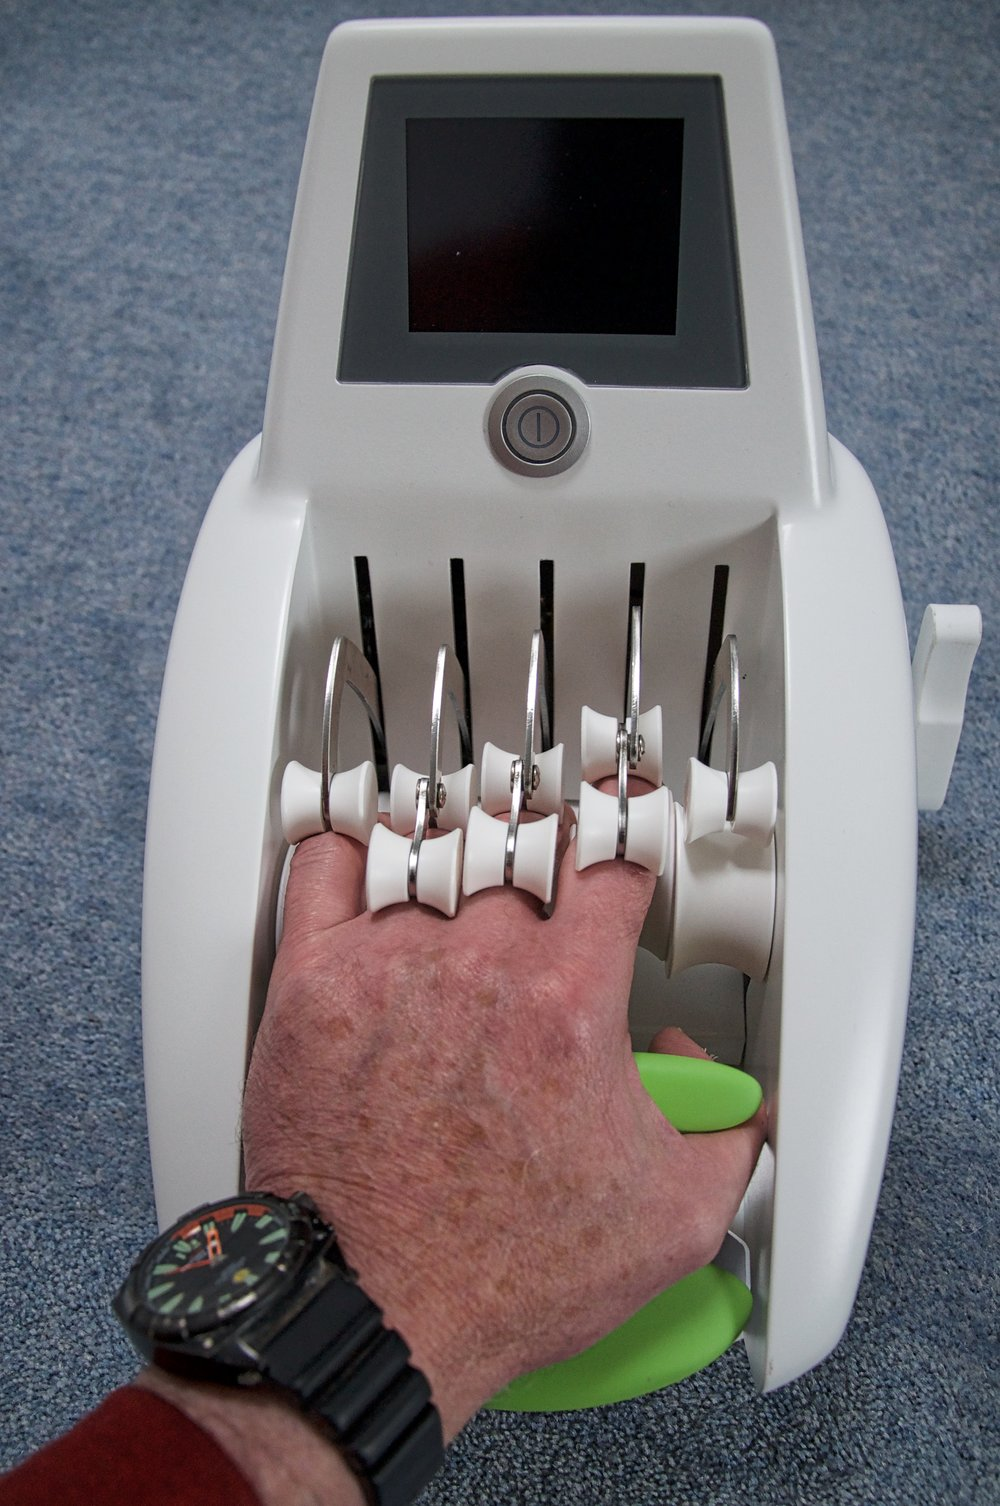 RehaDigit is an effective hand rehab device